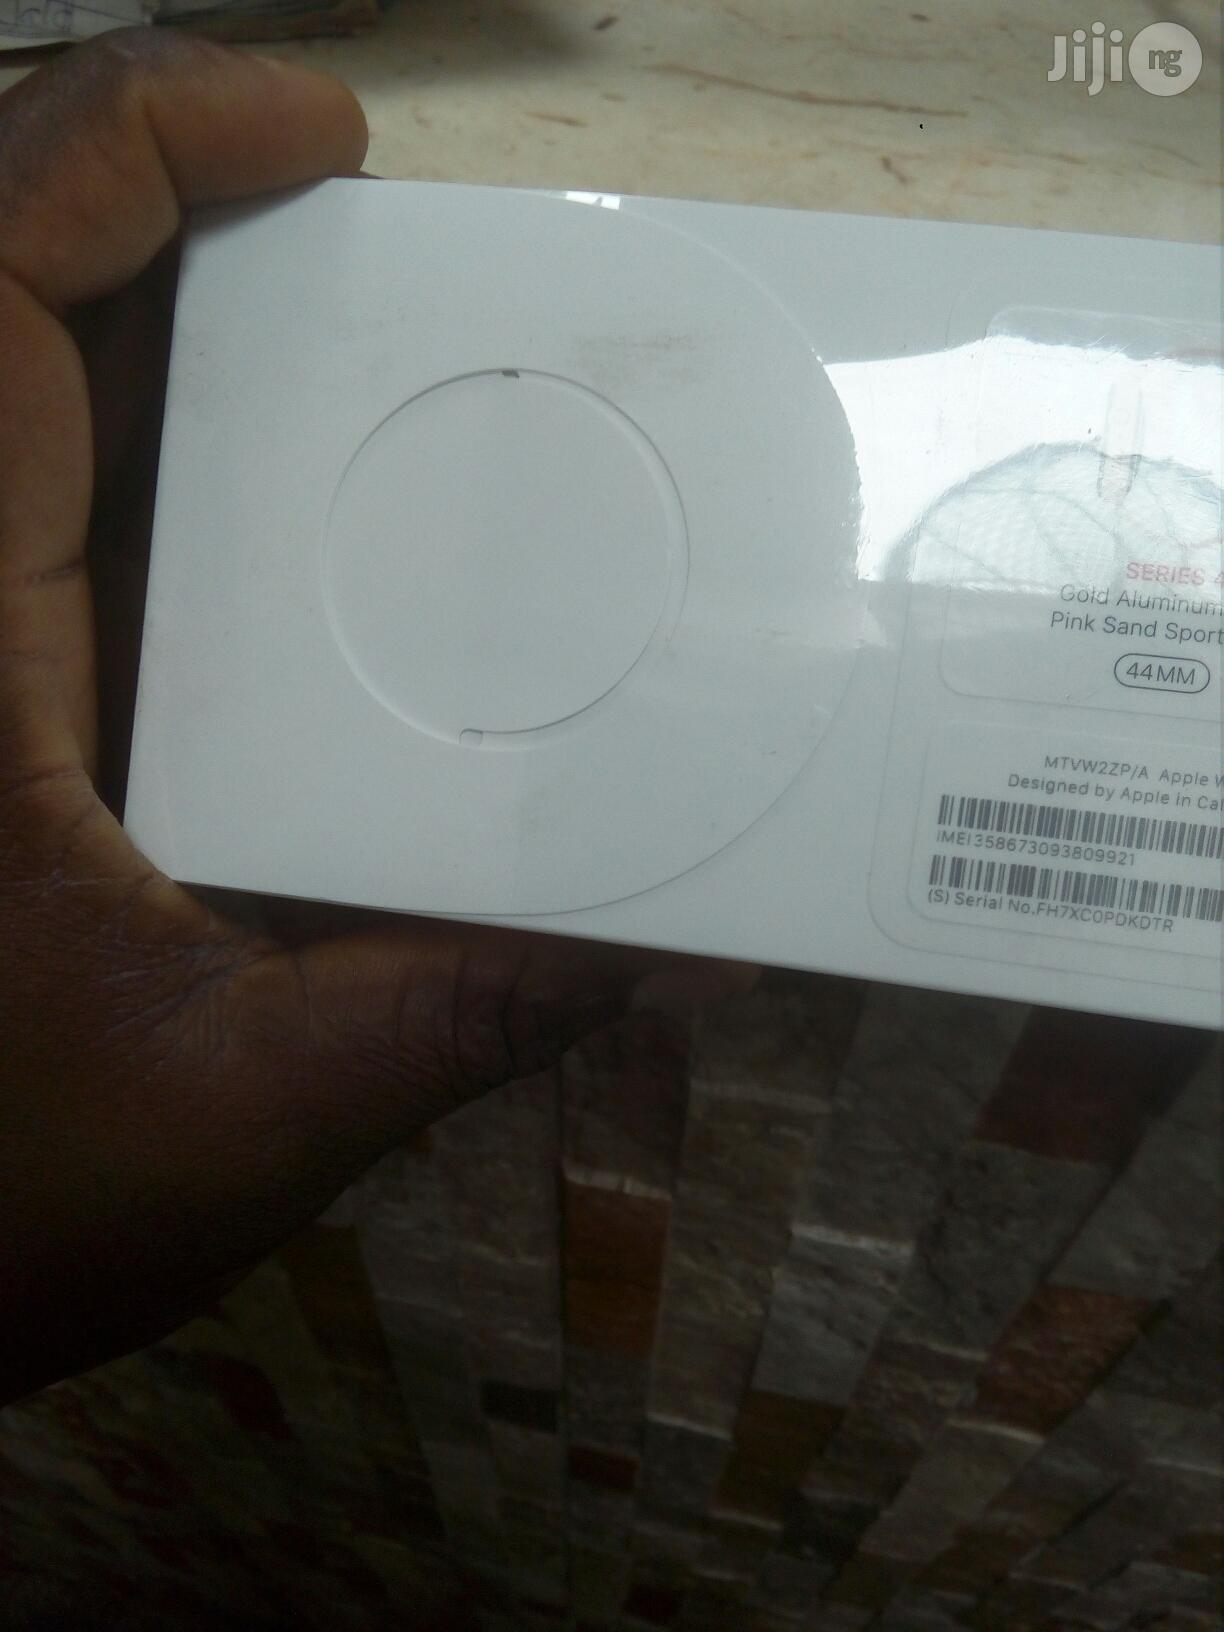 Apple Series 4 44mm GPS Cellular | Smart Watches & Trackers for sale in Ikeja, Lagos State, Nigeria